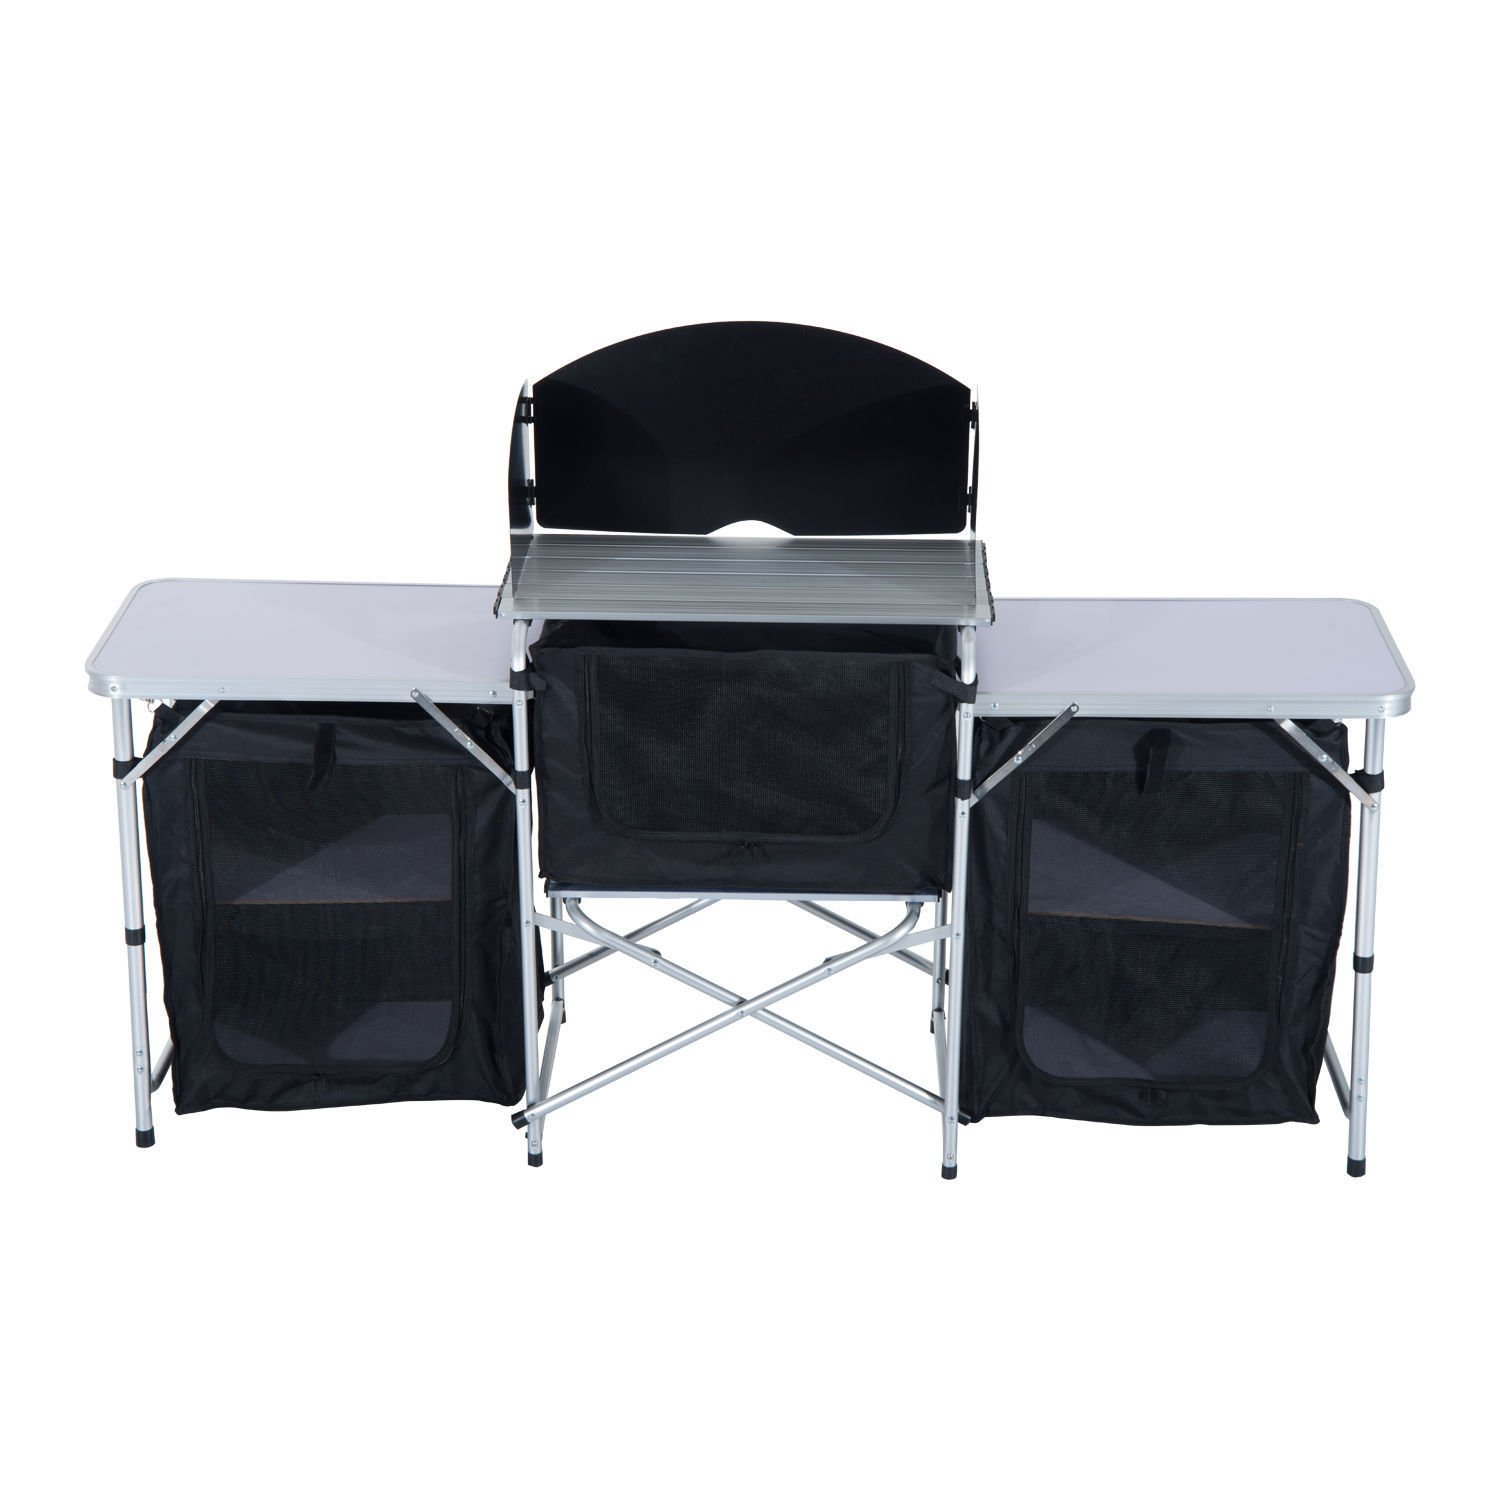 Clever Market Camping Folding Table Comfort Durable Portable Kitchen Picnic Cabinet Solid Comfortable Aluminium Barbeque Tabletops Storage Organizer